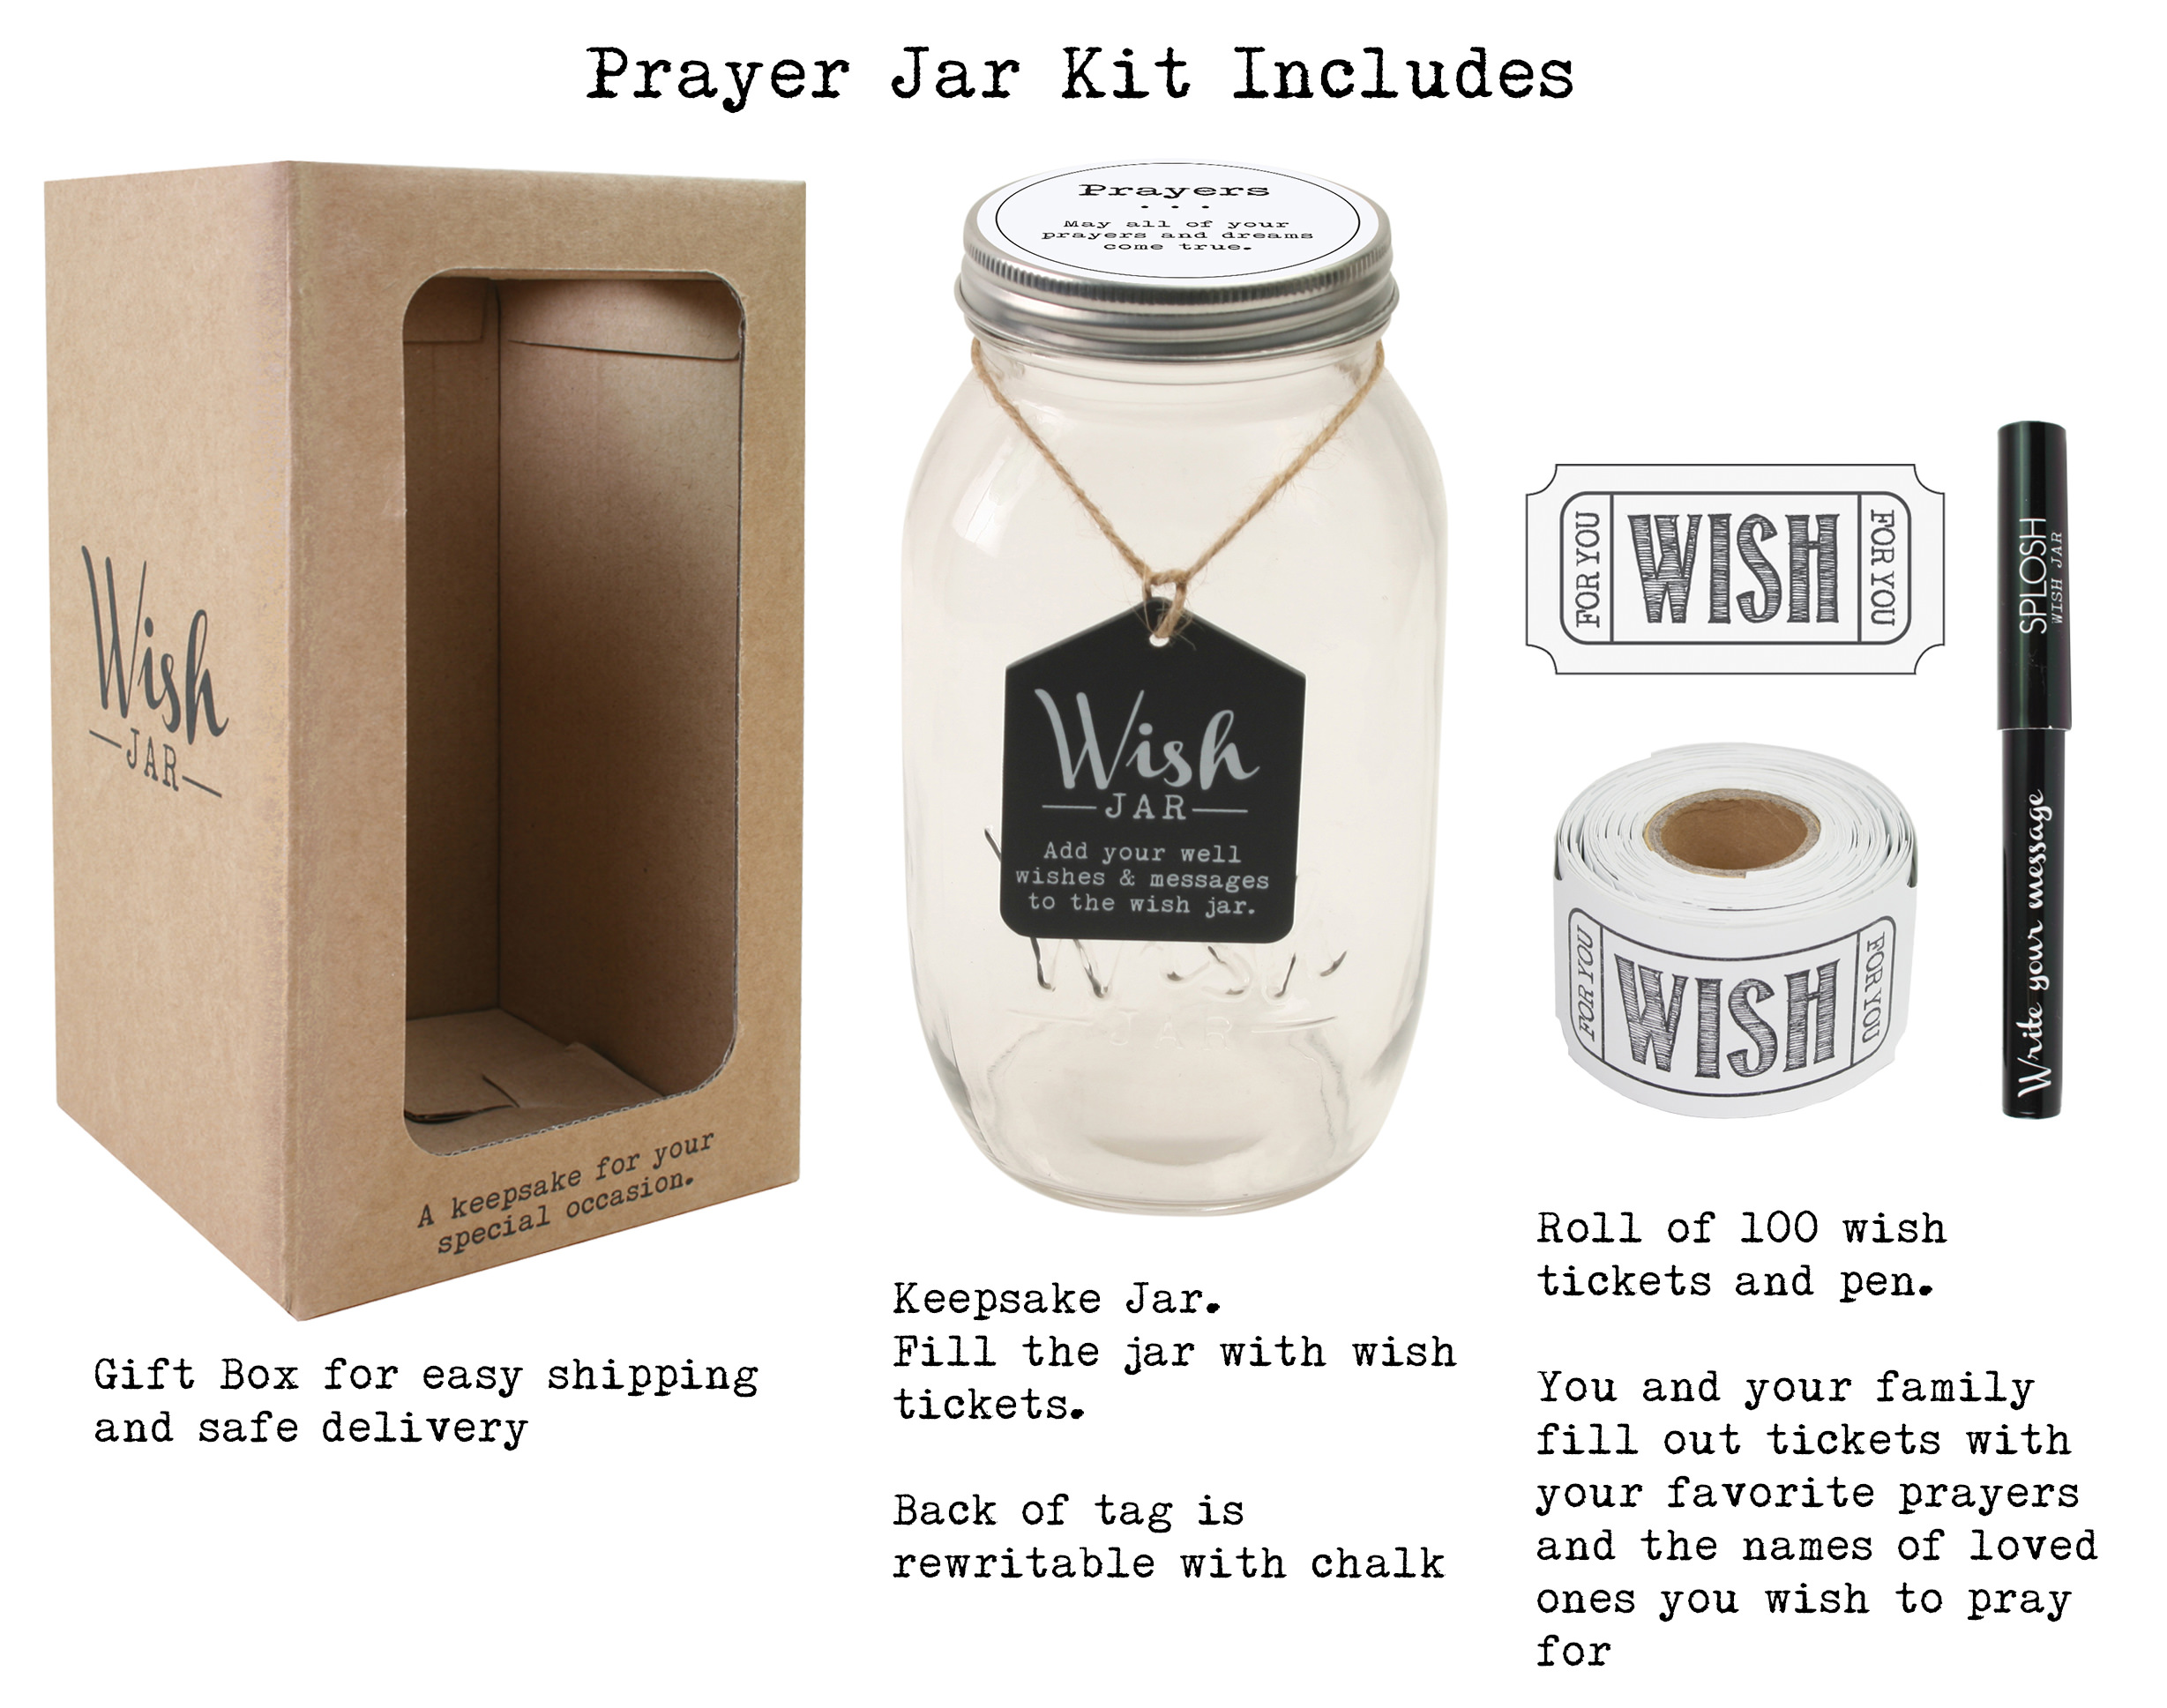 Top Shelf Prayer Wish Jar Personalized Religious Gift For Him Her Unique And Thoughtful Gift Ideas For Friends And Family Kit Comes With 100 Tickets And Decorative Lid